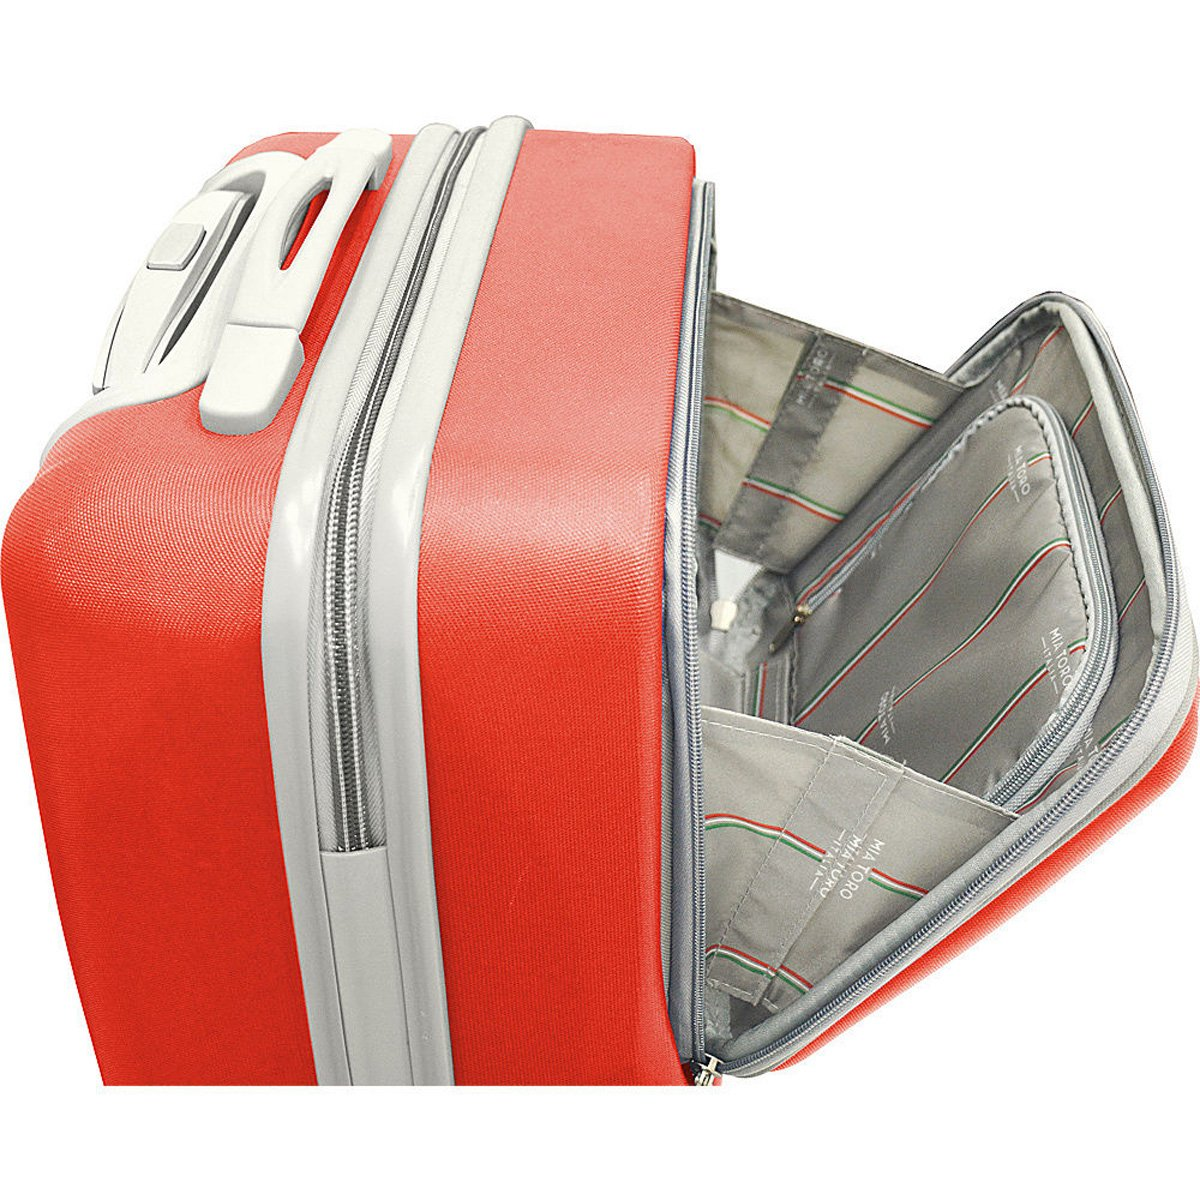 The Set of Classic Silver Mezza Tasca 3 Piece Hardside Spinner Luggage Set